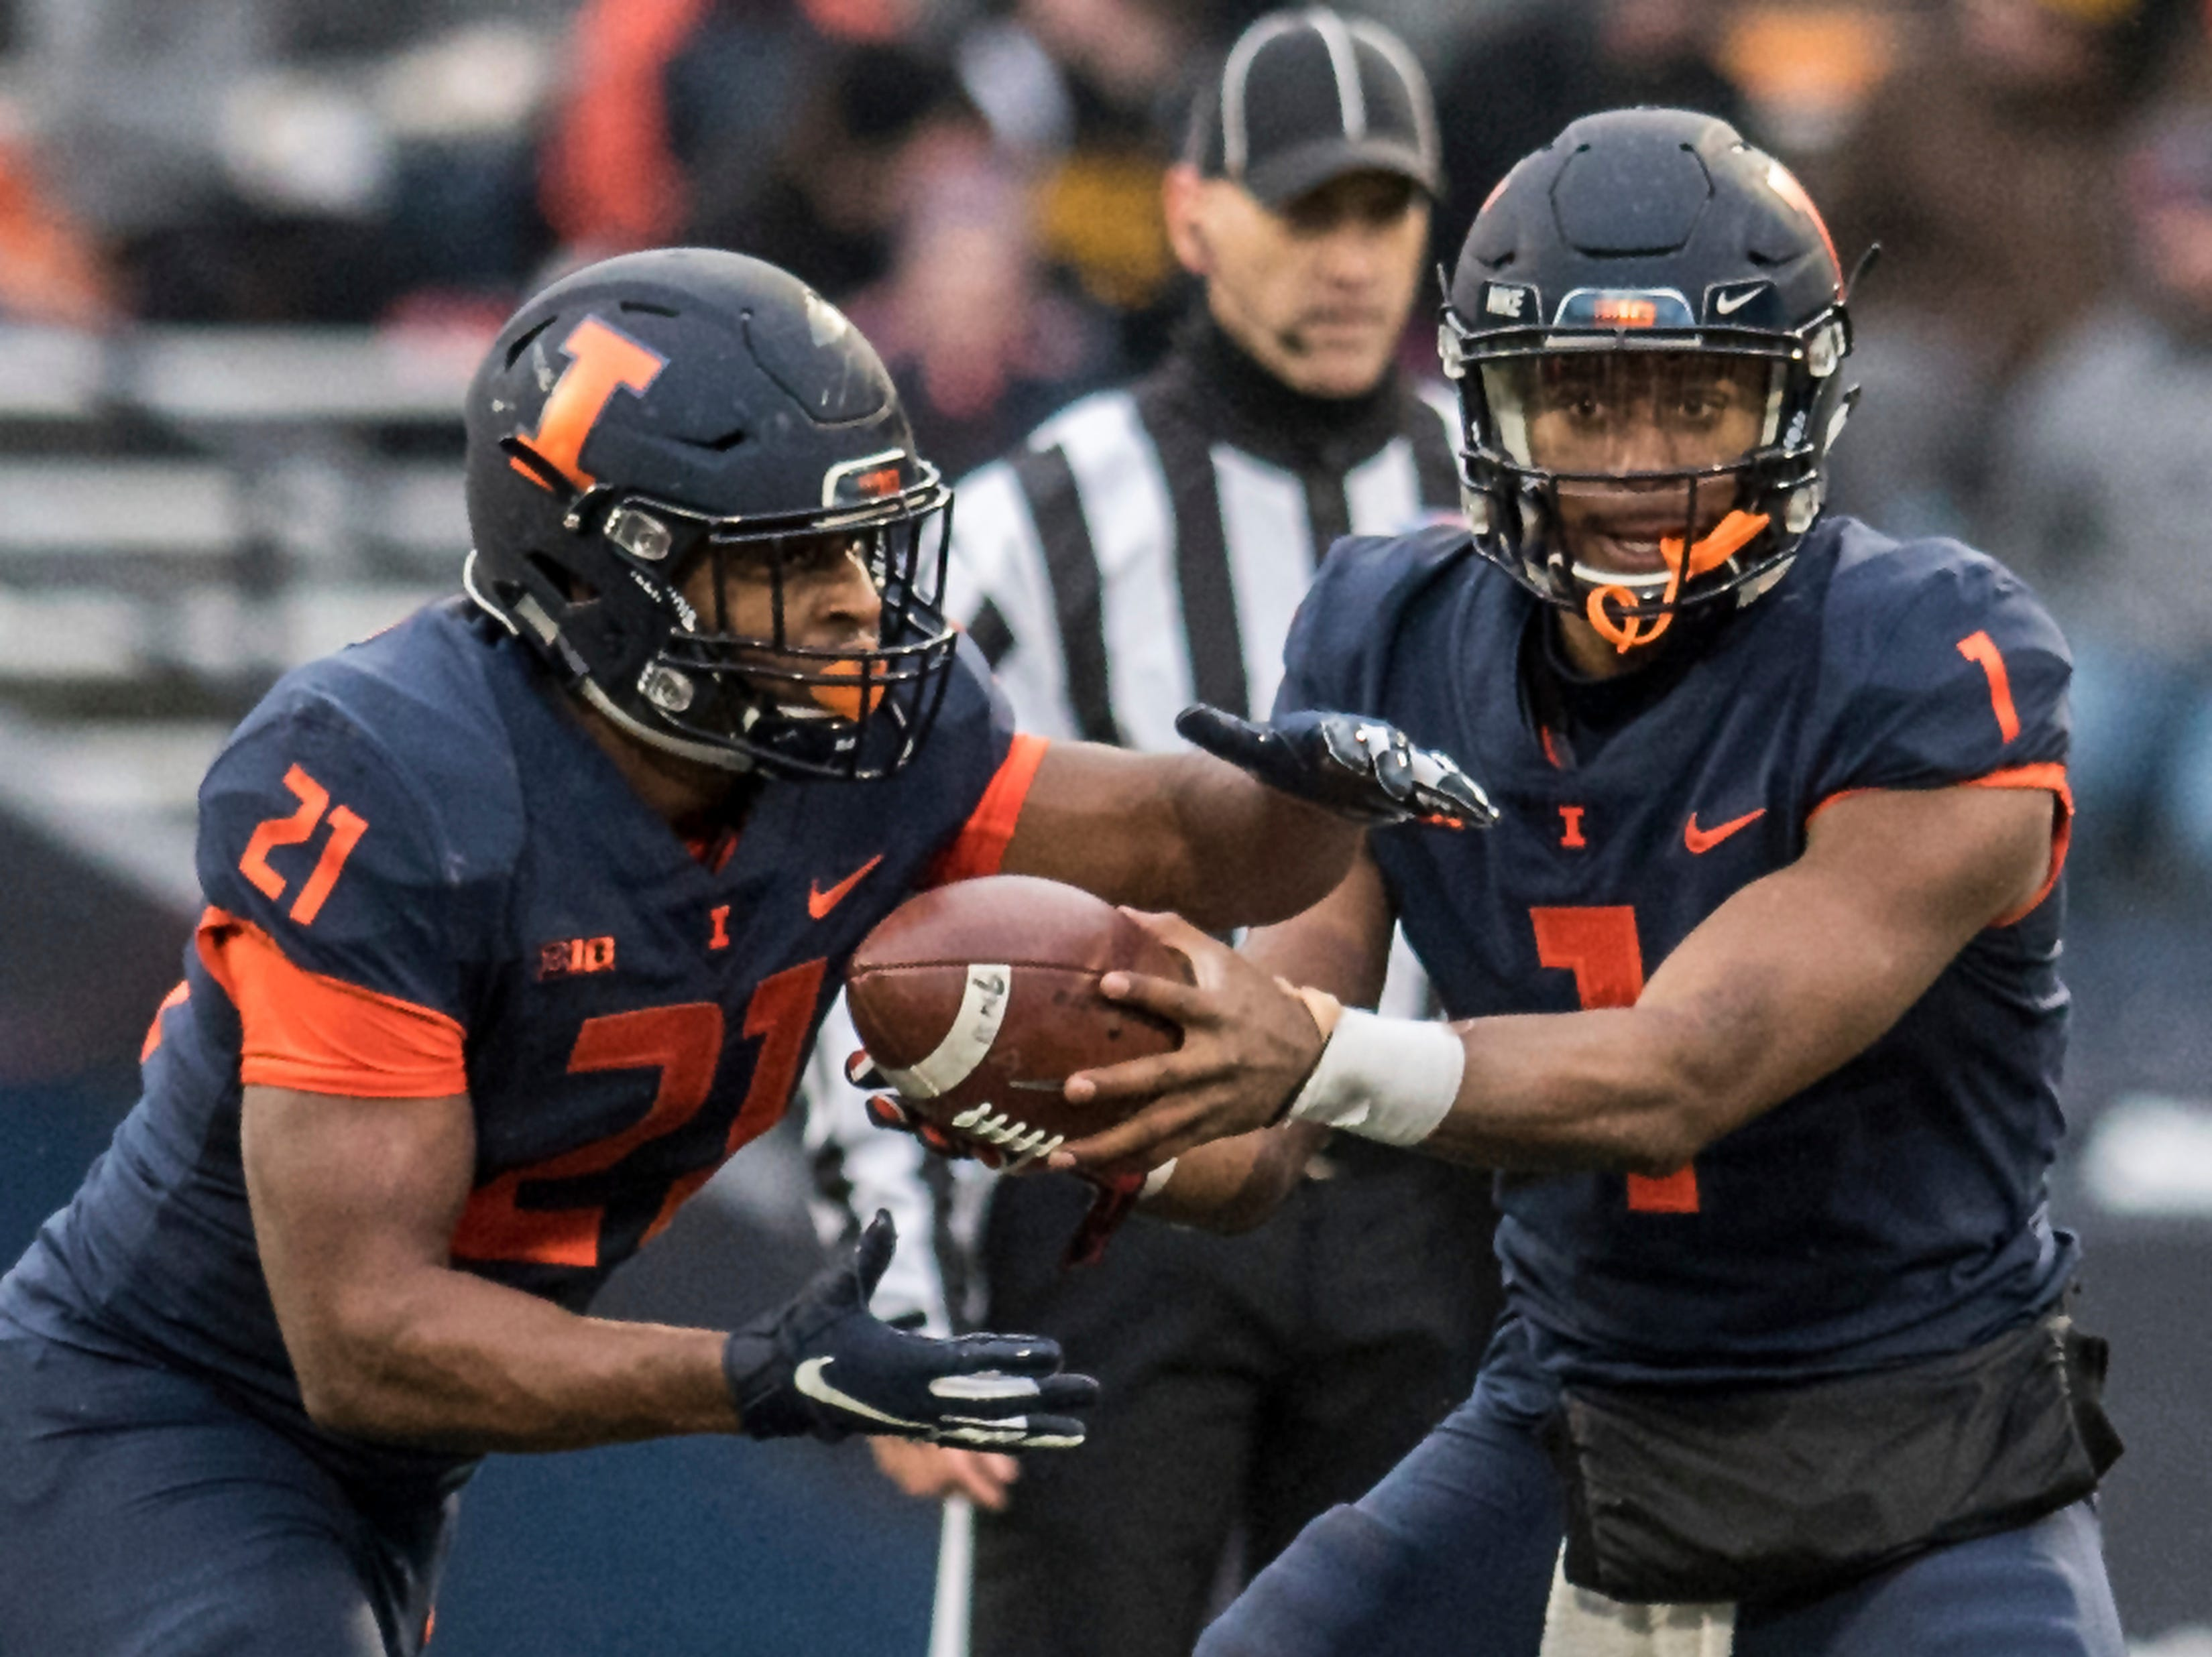 Illinois quarterback A.J. Bush, Jr. (1) hands off to running back Ra'Von Bonner (21) in the first half of a NCAA college football game against Iowa, Saturday, Nov. 17, 2018, in Champaign, Ill.